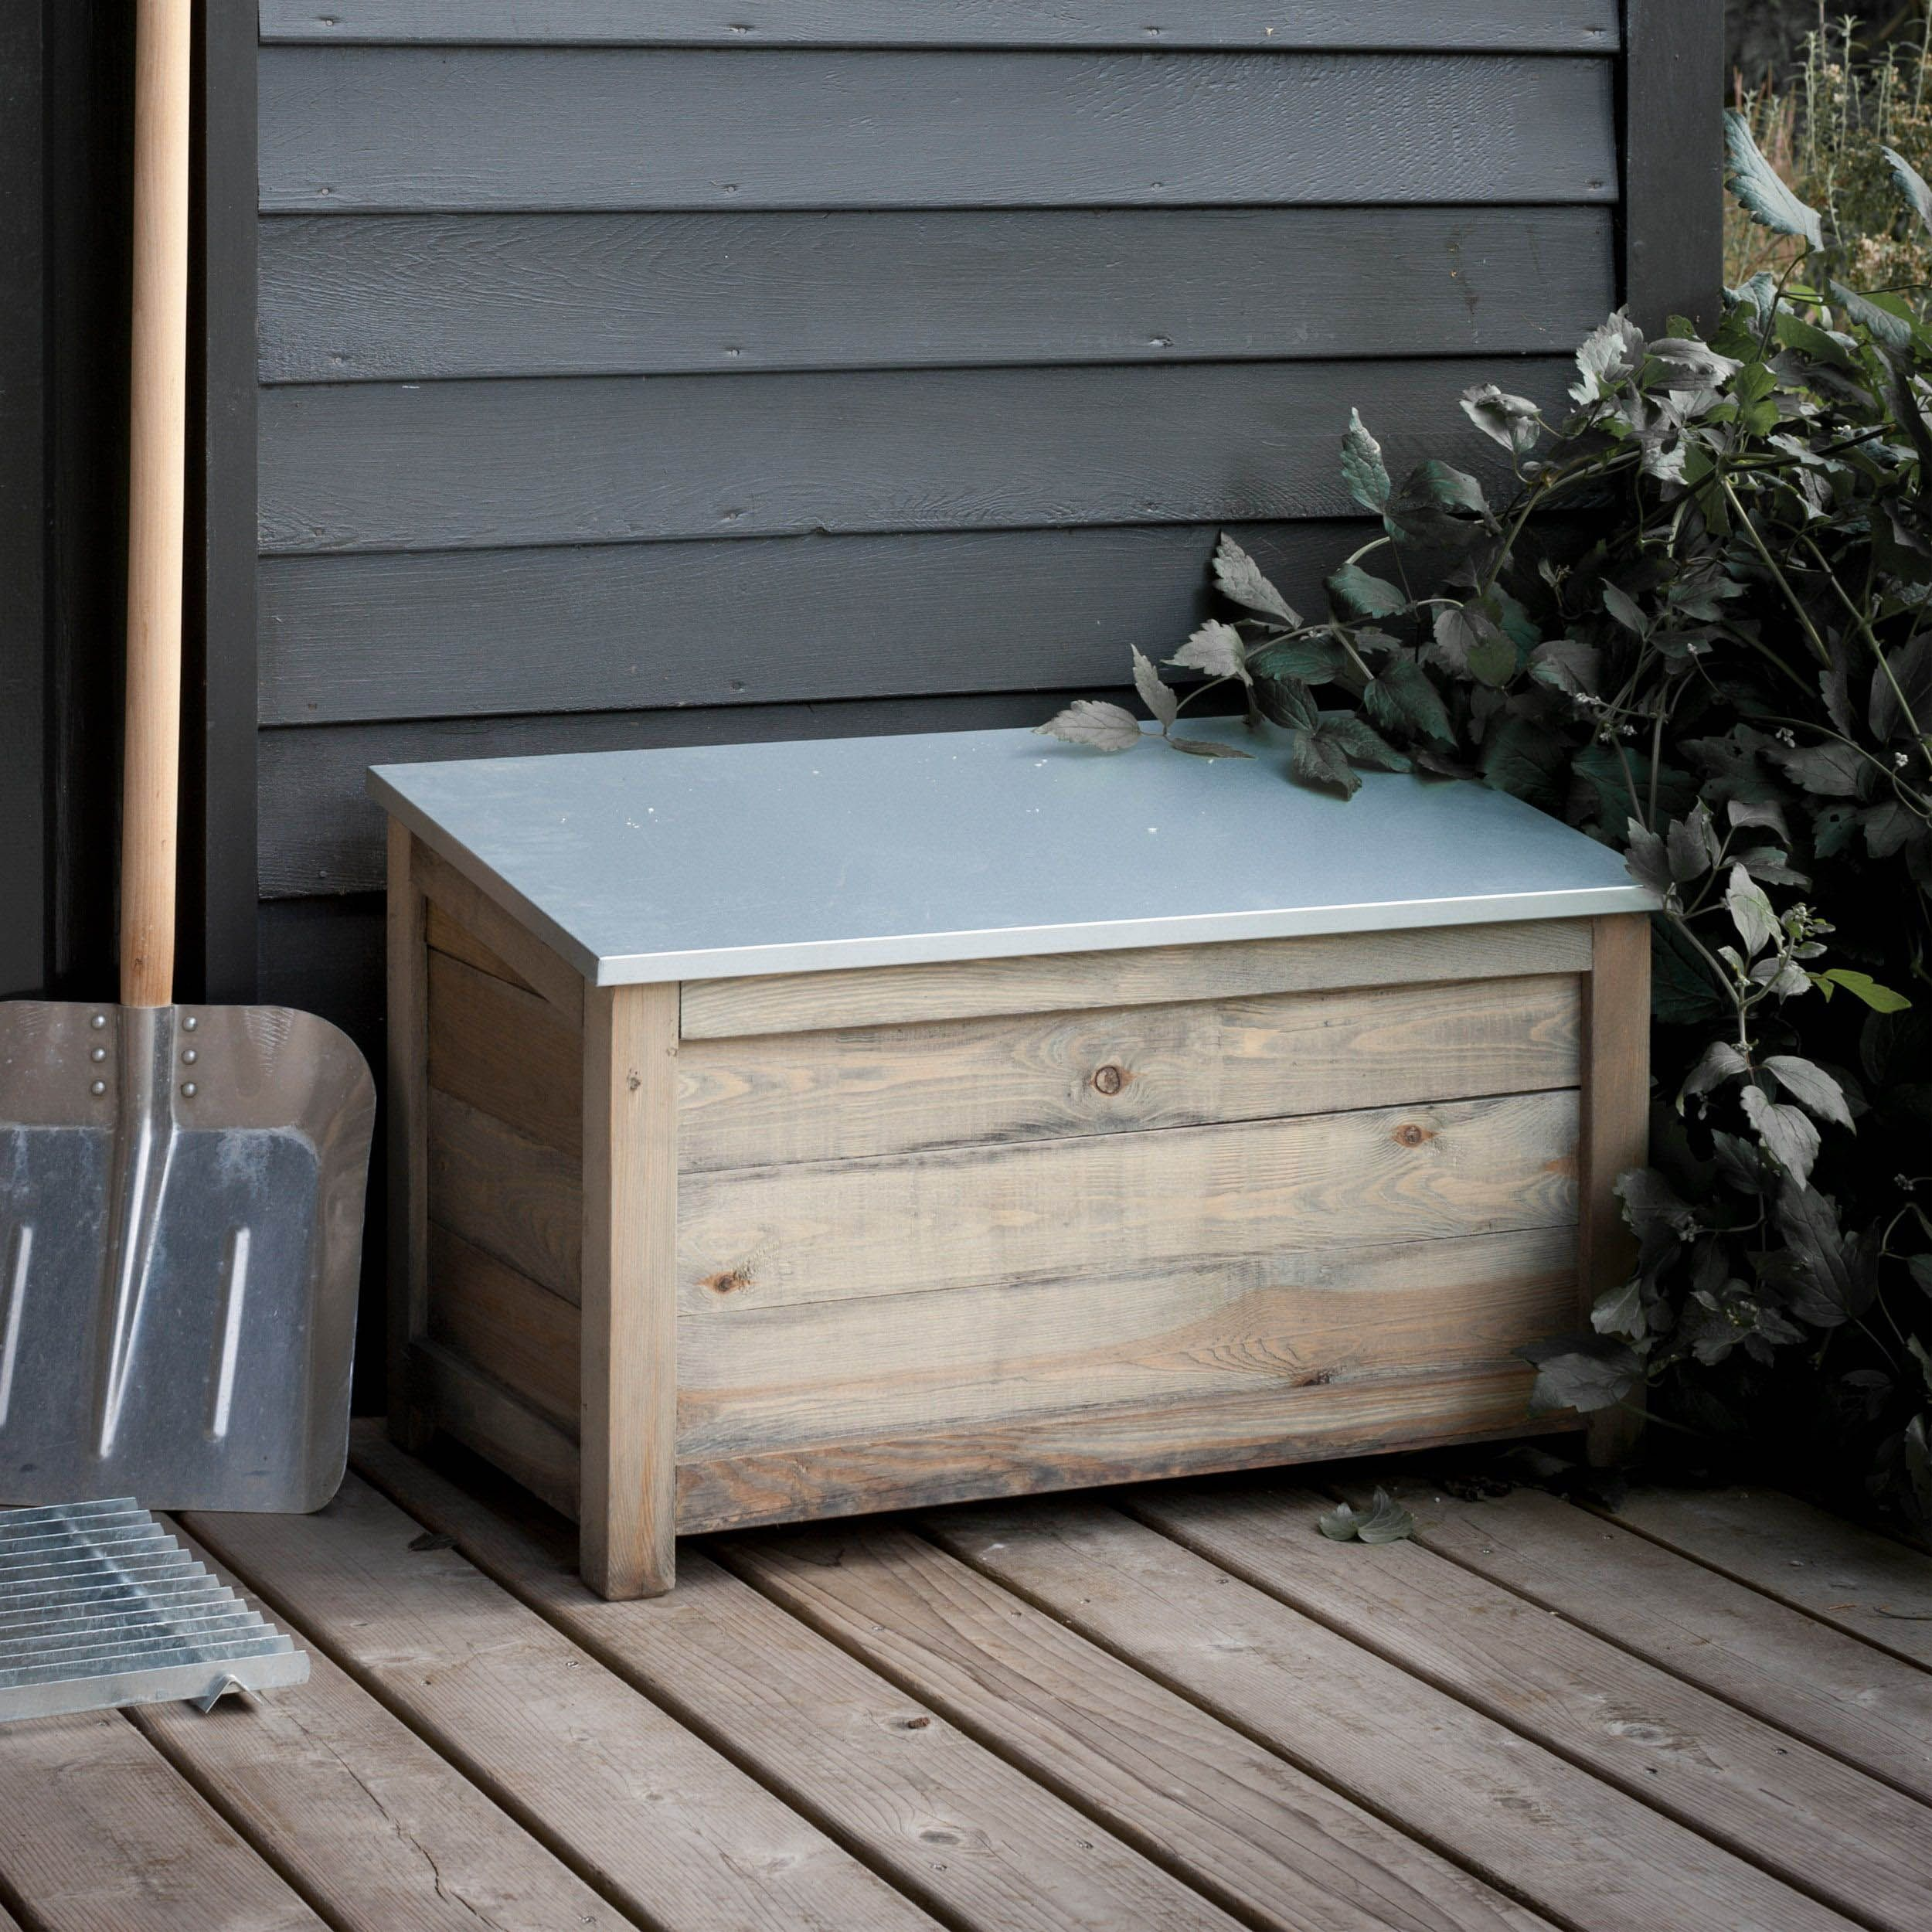 10 Charming Diy Outdoor Storage Ideas Outdoor Storage Boxes Garden Storage Outdoor Storage Box